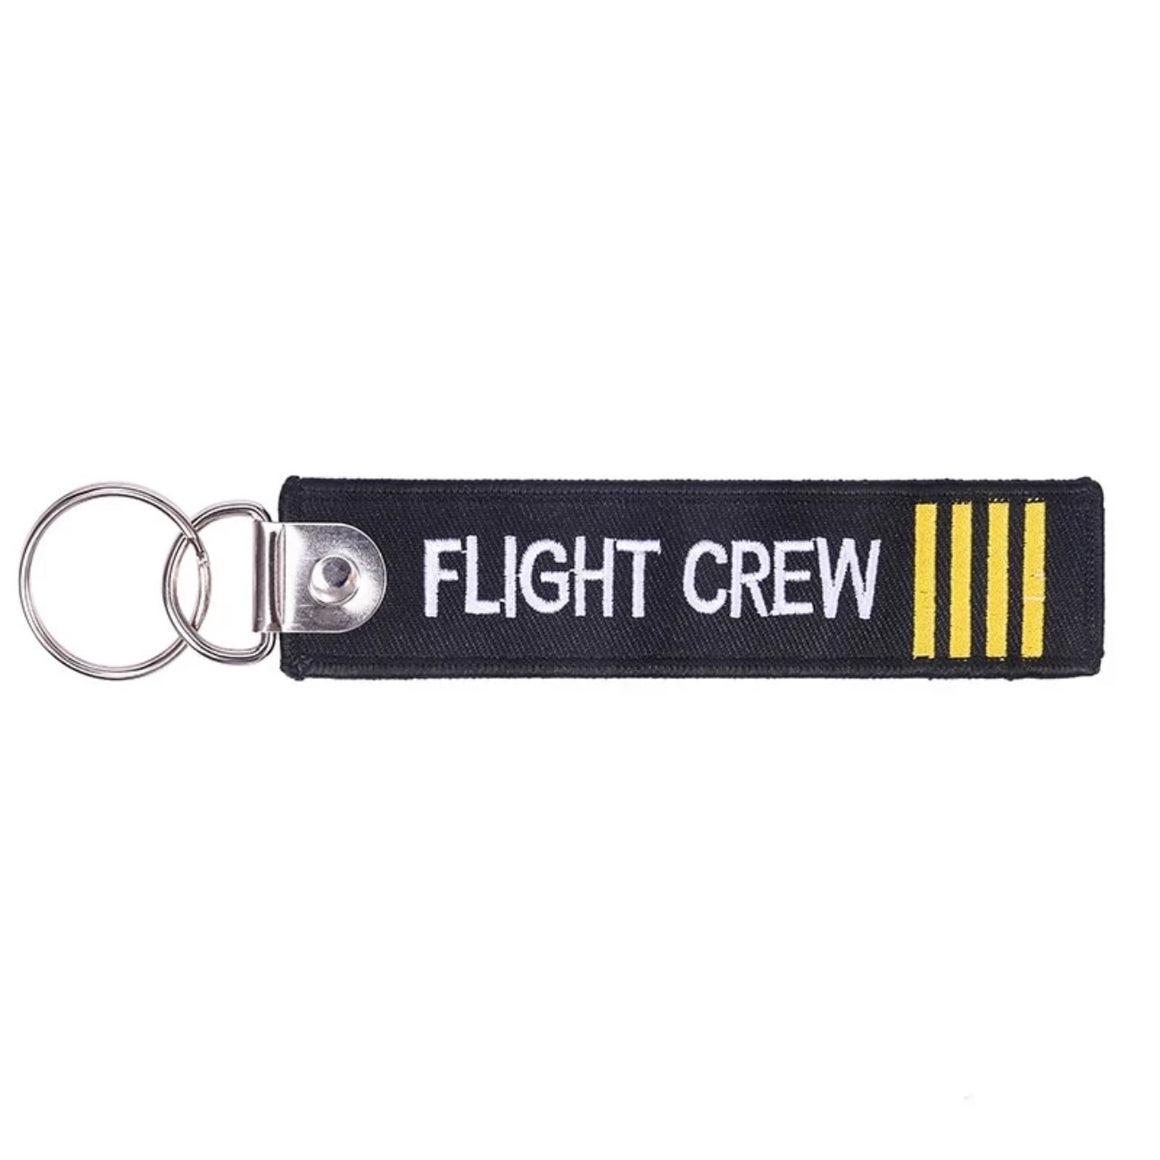 CLELO Flight crew Luggage tags Fashion Embroidery Bag tag with Keyring Key chain for Travel Luggage Label 3PC/LOT